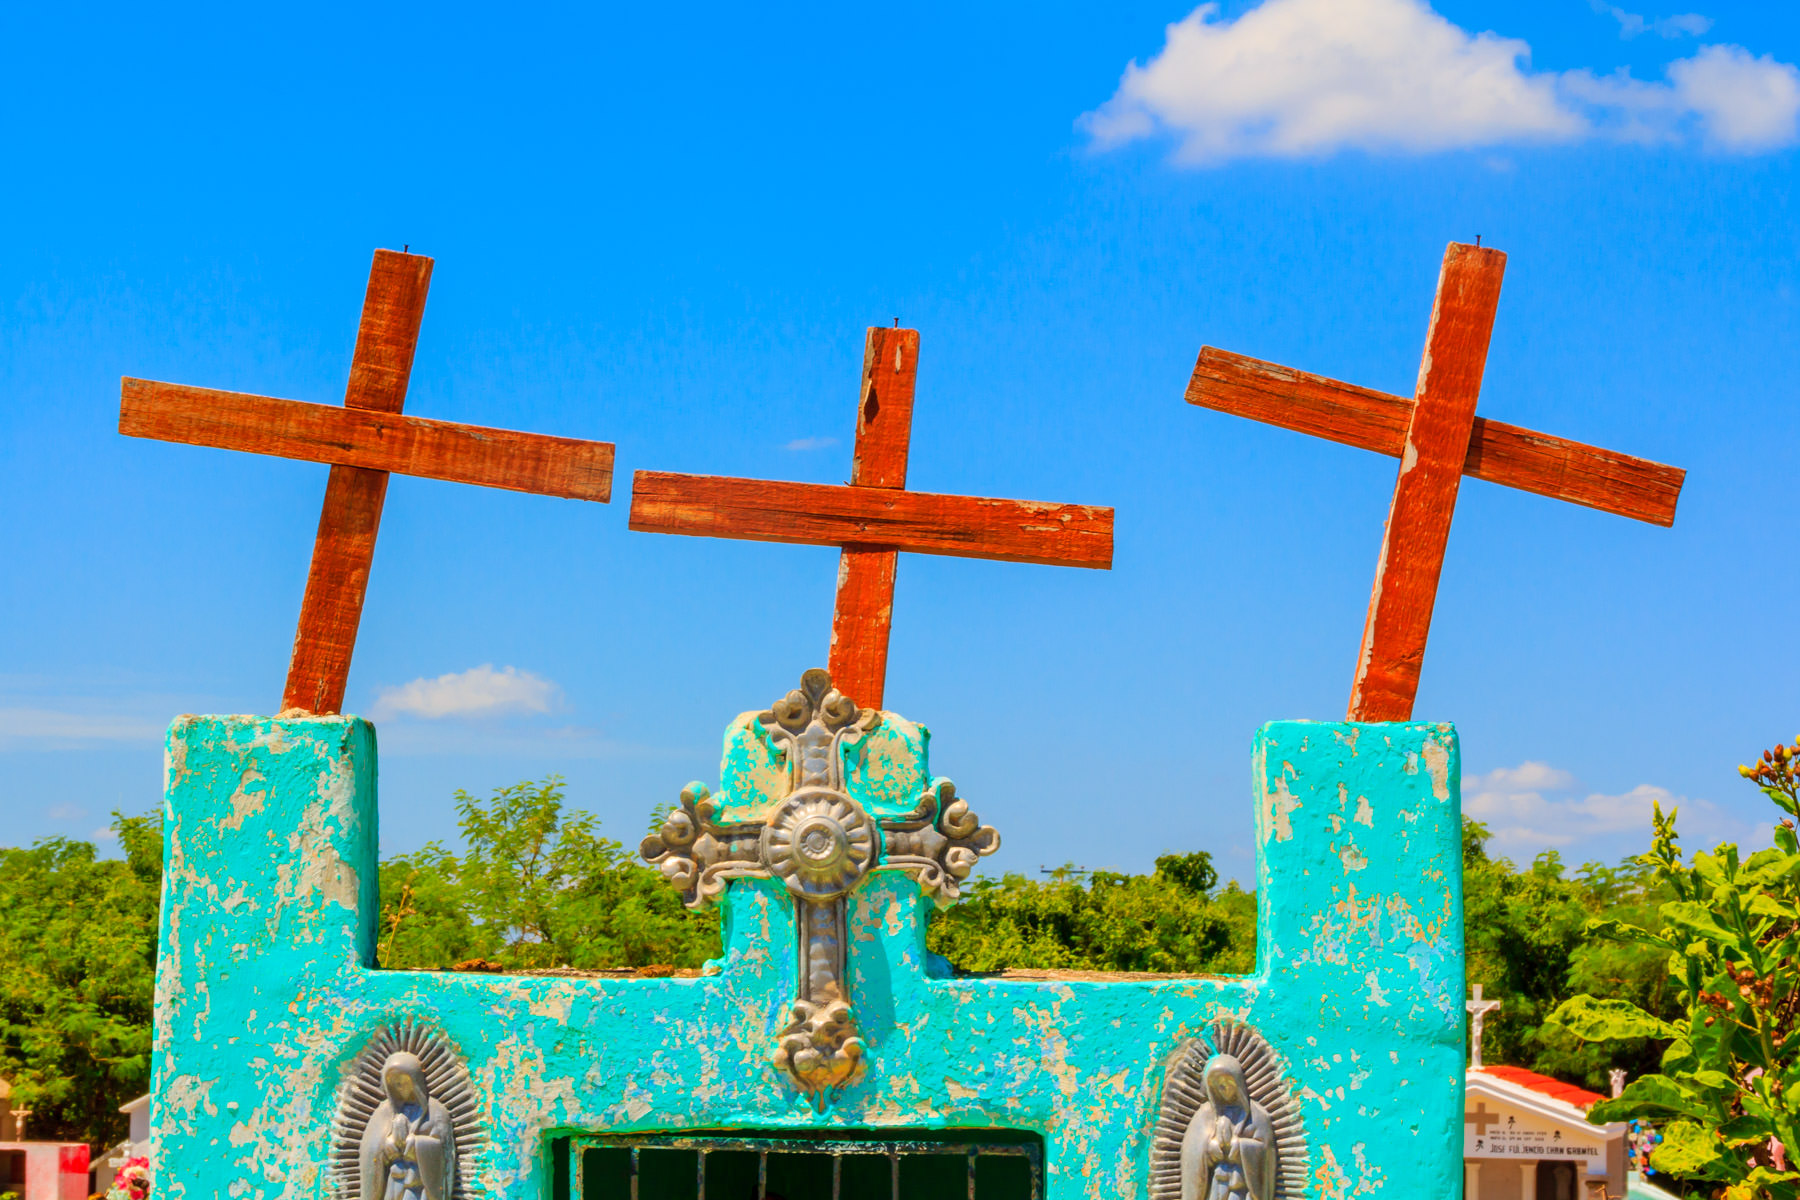 Crosses atop a colorful grave at a cemetery in the tiny Mayan town of Dzemul, Yucatan, Mexico.